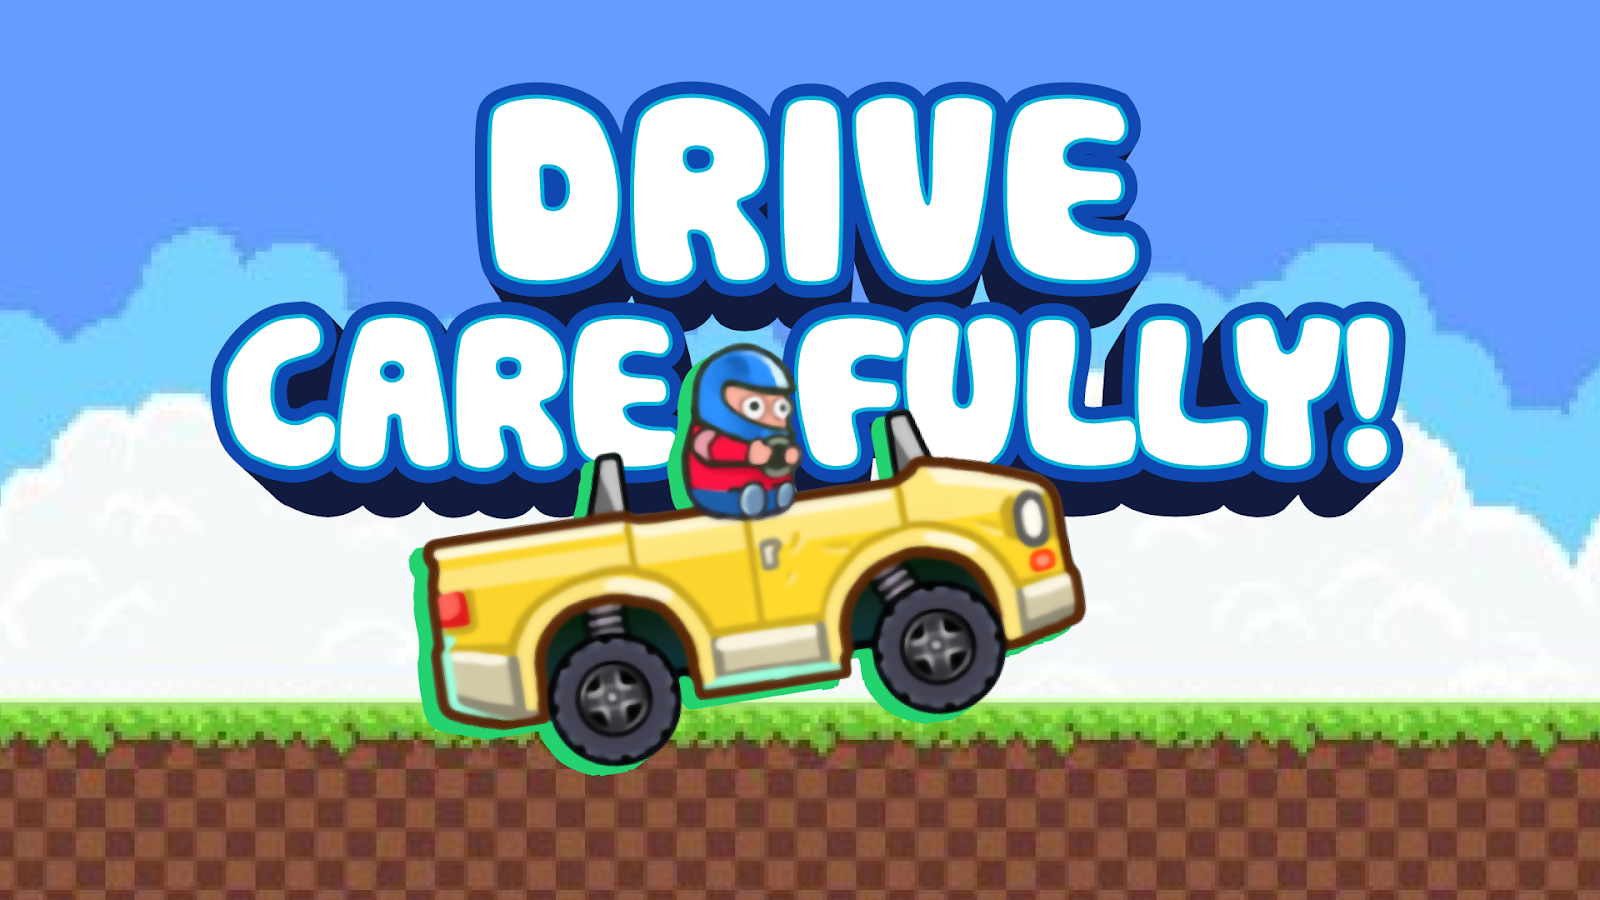 Drive Care Fully